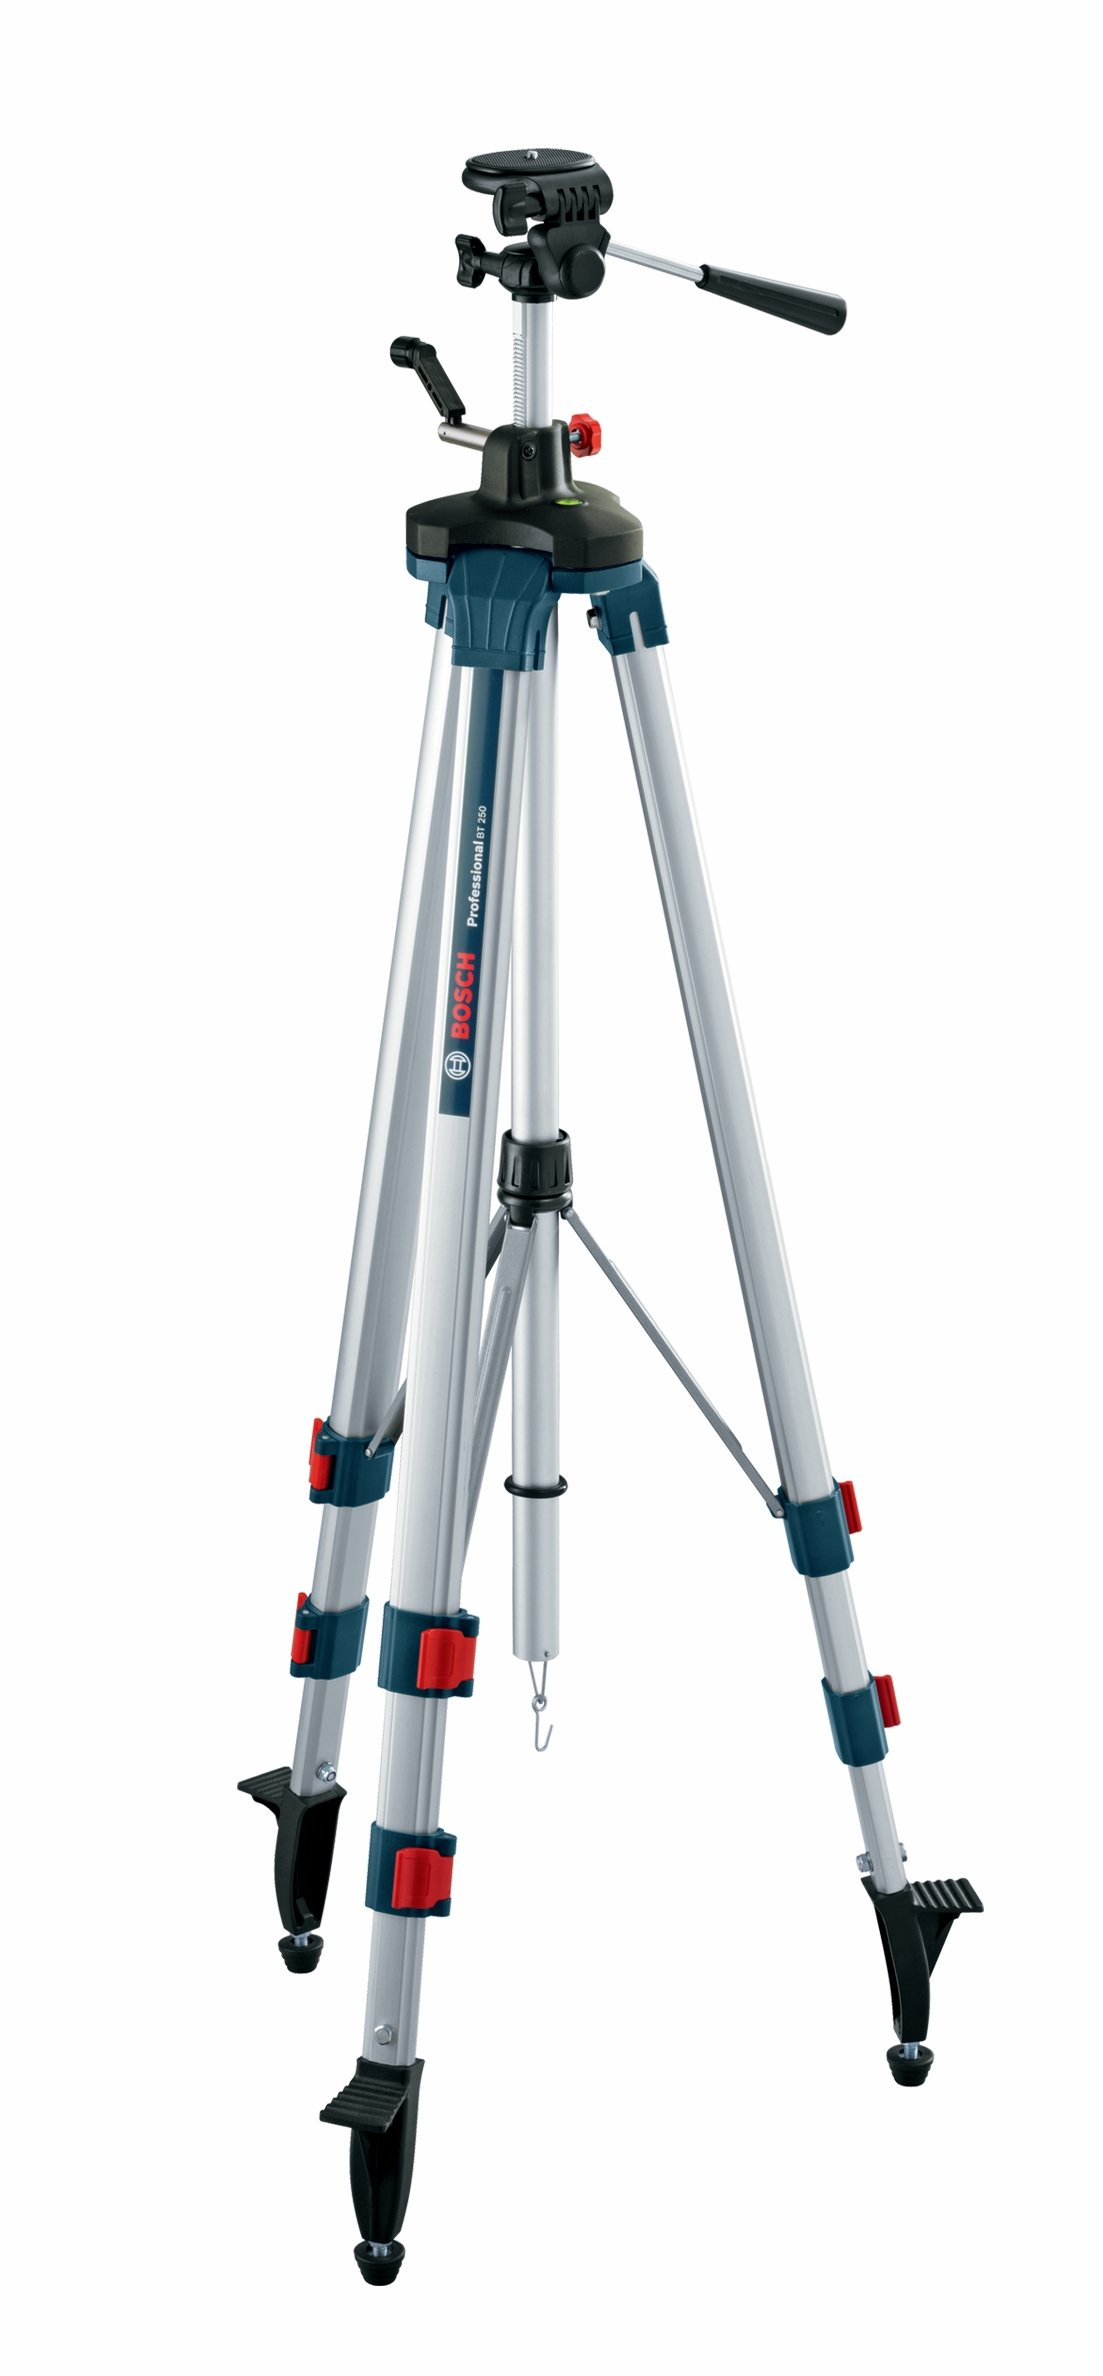 Bosch Professional Aluminum Elevator Tripod with Adjustable Legs BT 250